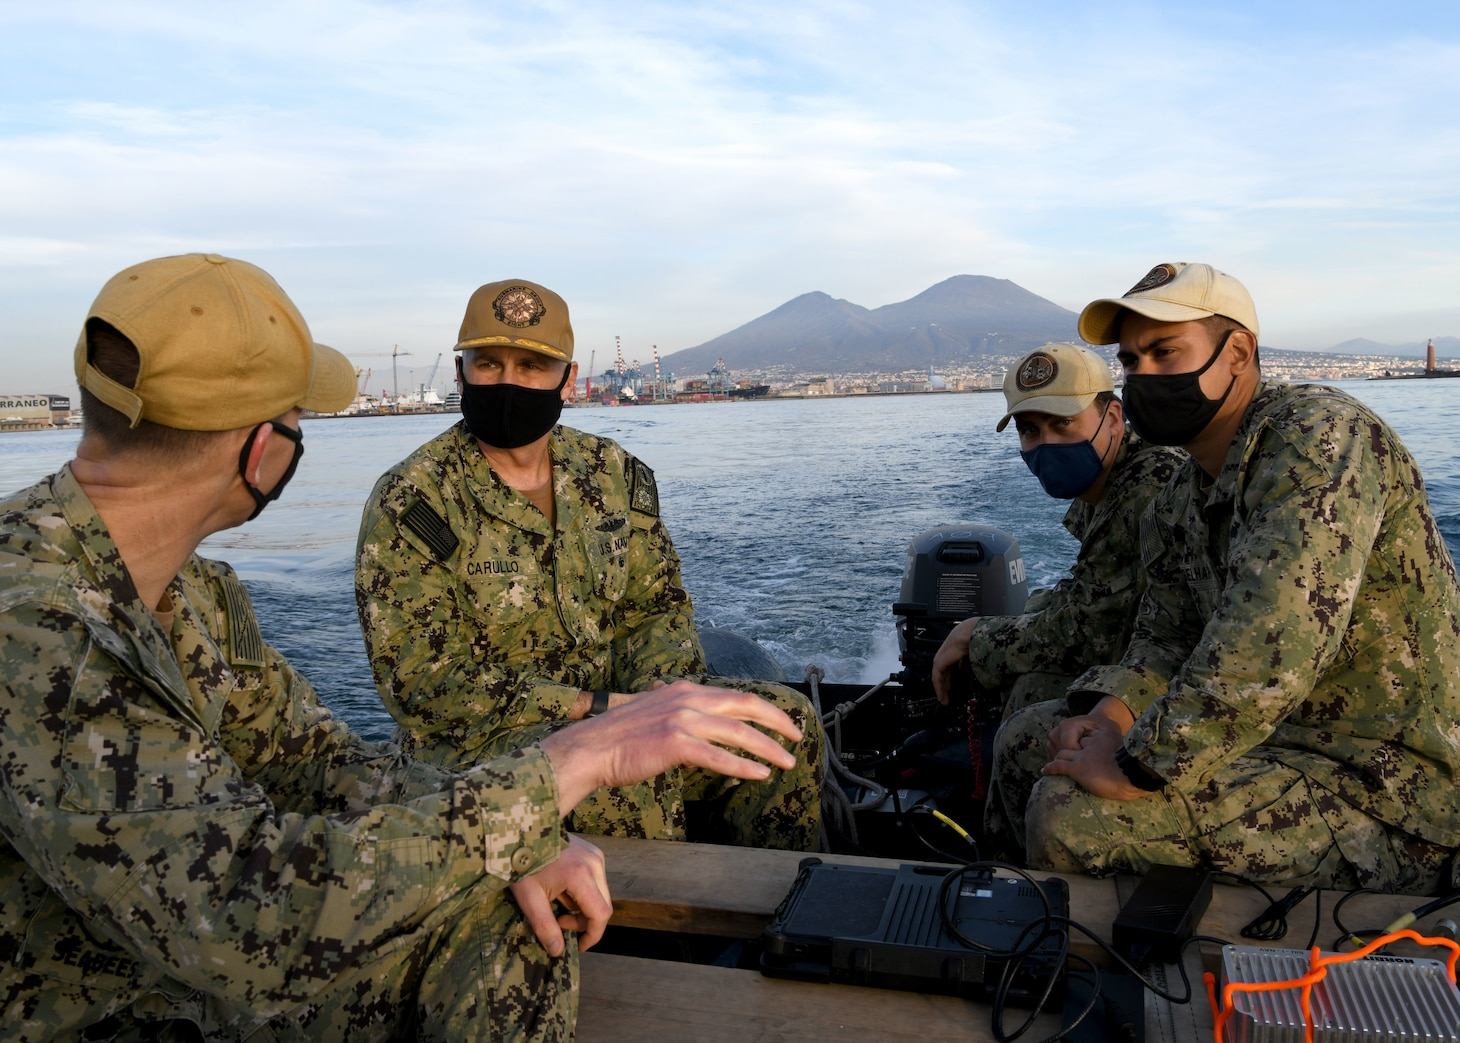 Rear Adm. Anthony Carullo, Deputy Commander, U.S. Sixth Fleet, received a tour of Naples harbor from Underwater Construction Team (UCT) during a coordinated assessment of the Campania region ports, Feb. 4, 2021.